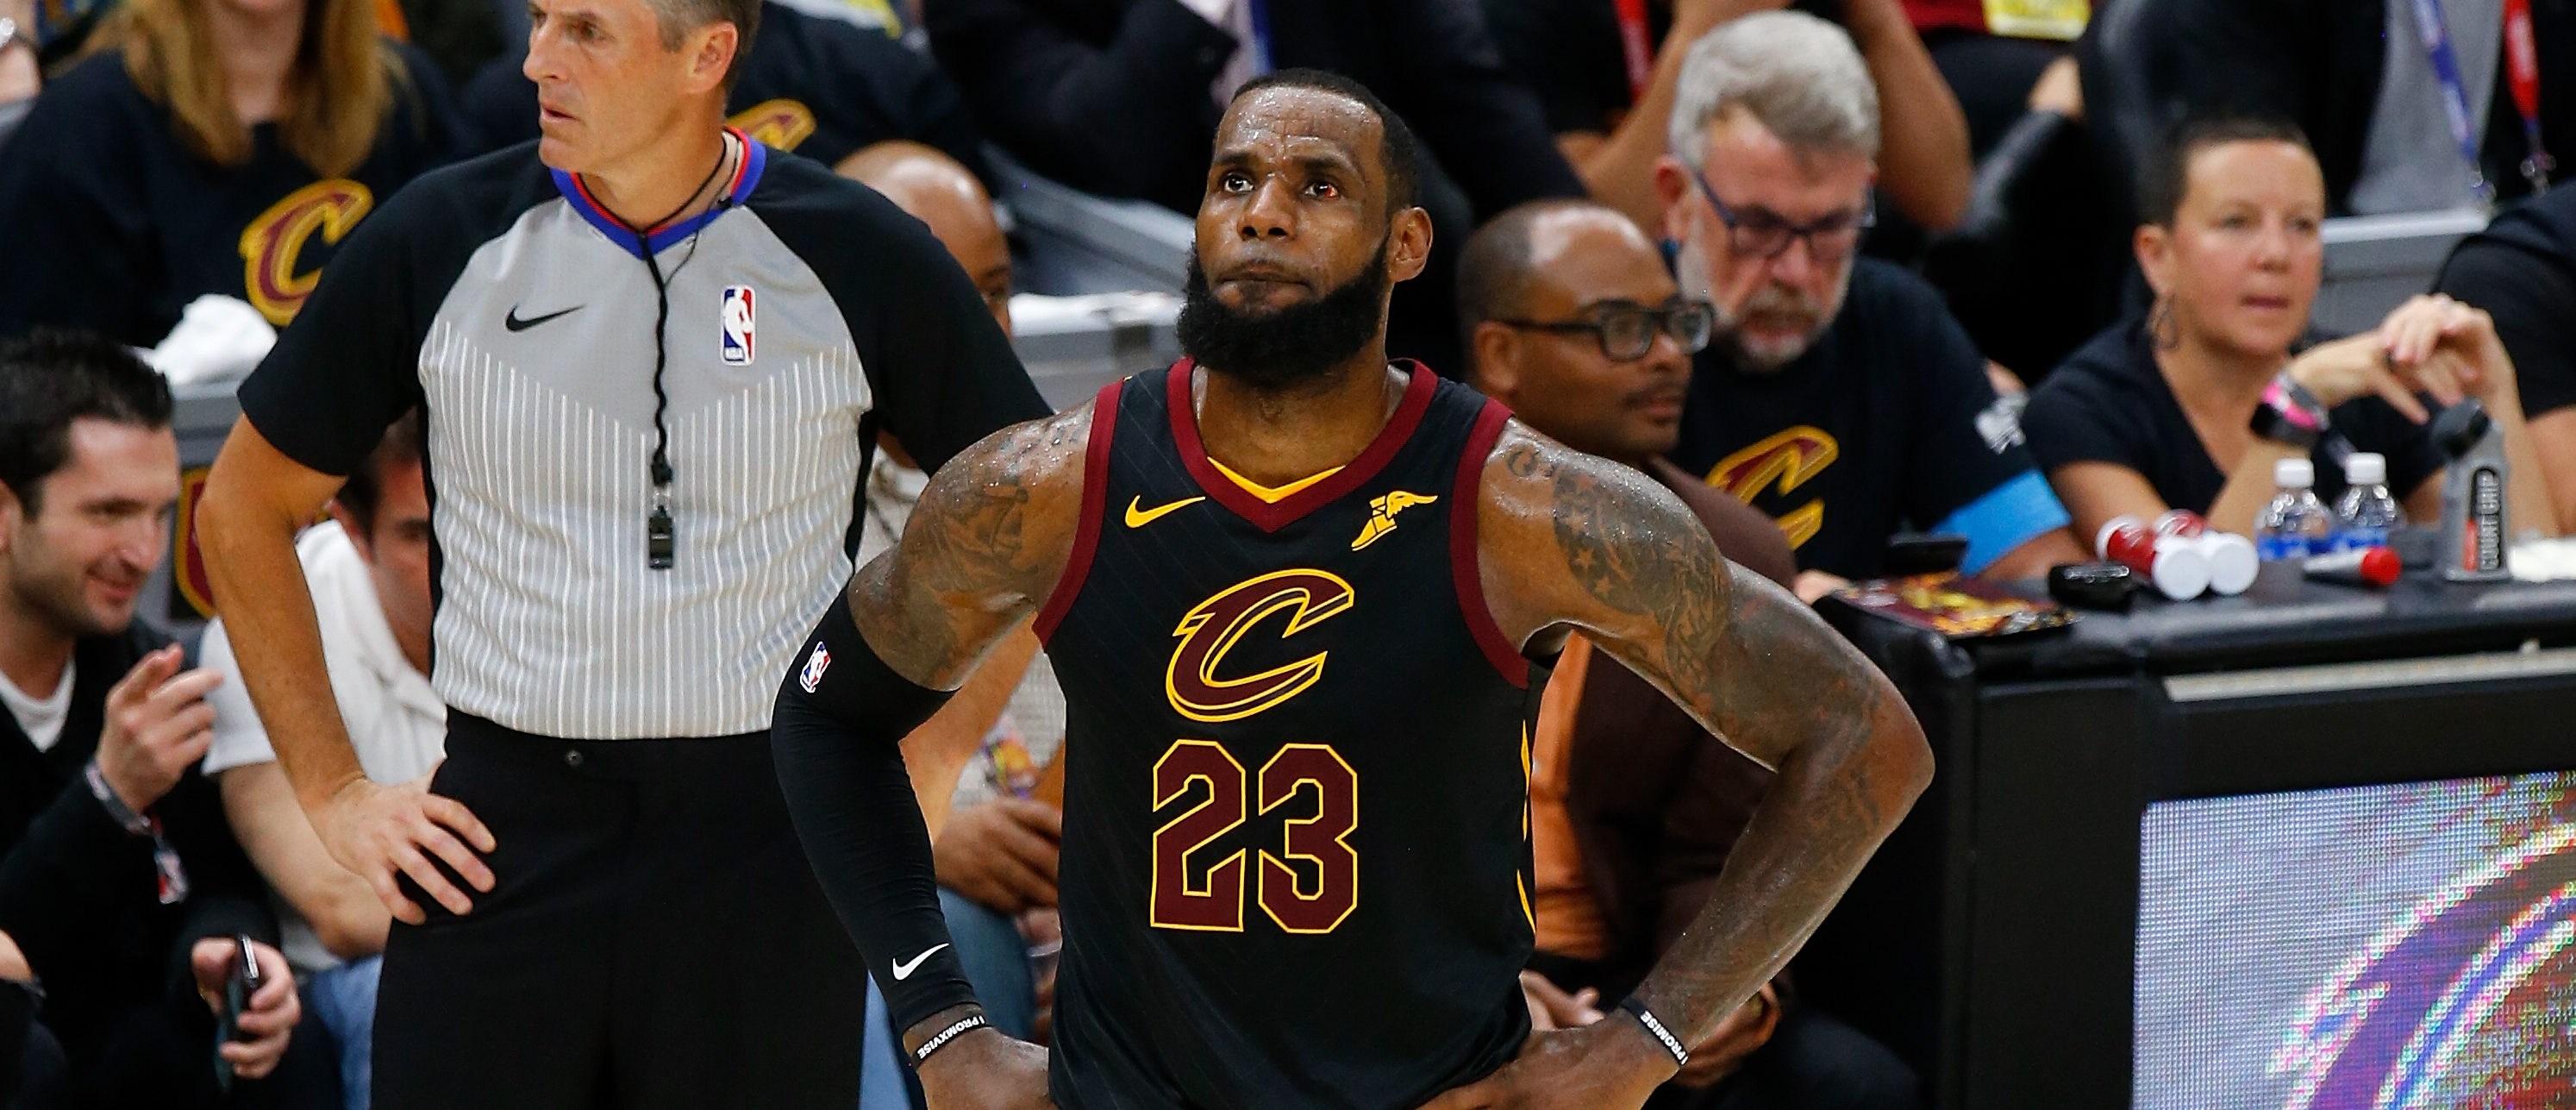 LeBron James #23 of the Cleveland Cavaliers reacts against the Golden State Warriors during Game Four of the 2018 NBA Finals at Quicken Loans Arena on June 8, 2018 in Cleveland, Ohio. (Photo by Justin K. Aller/Getty Images)